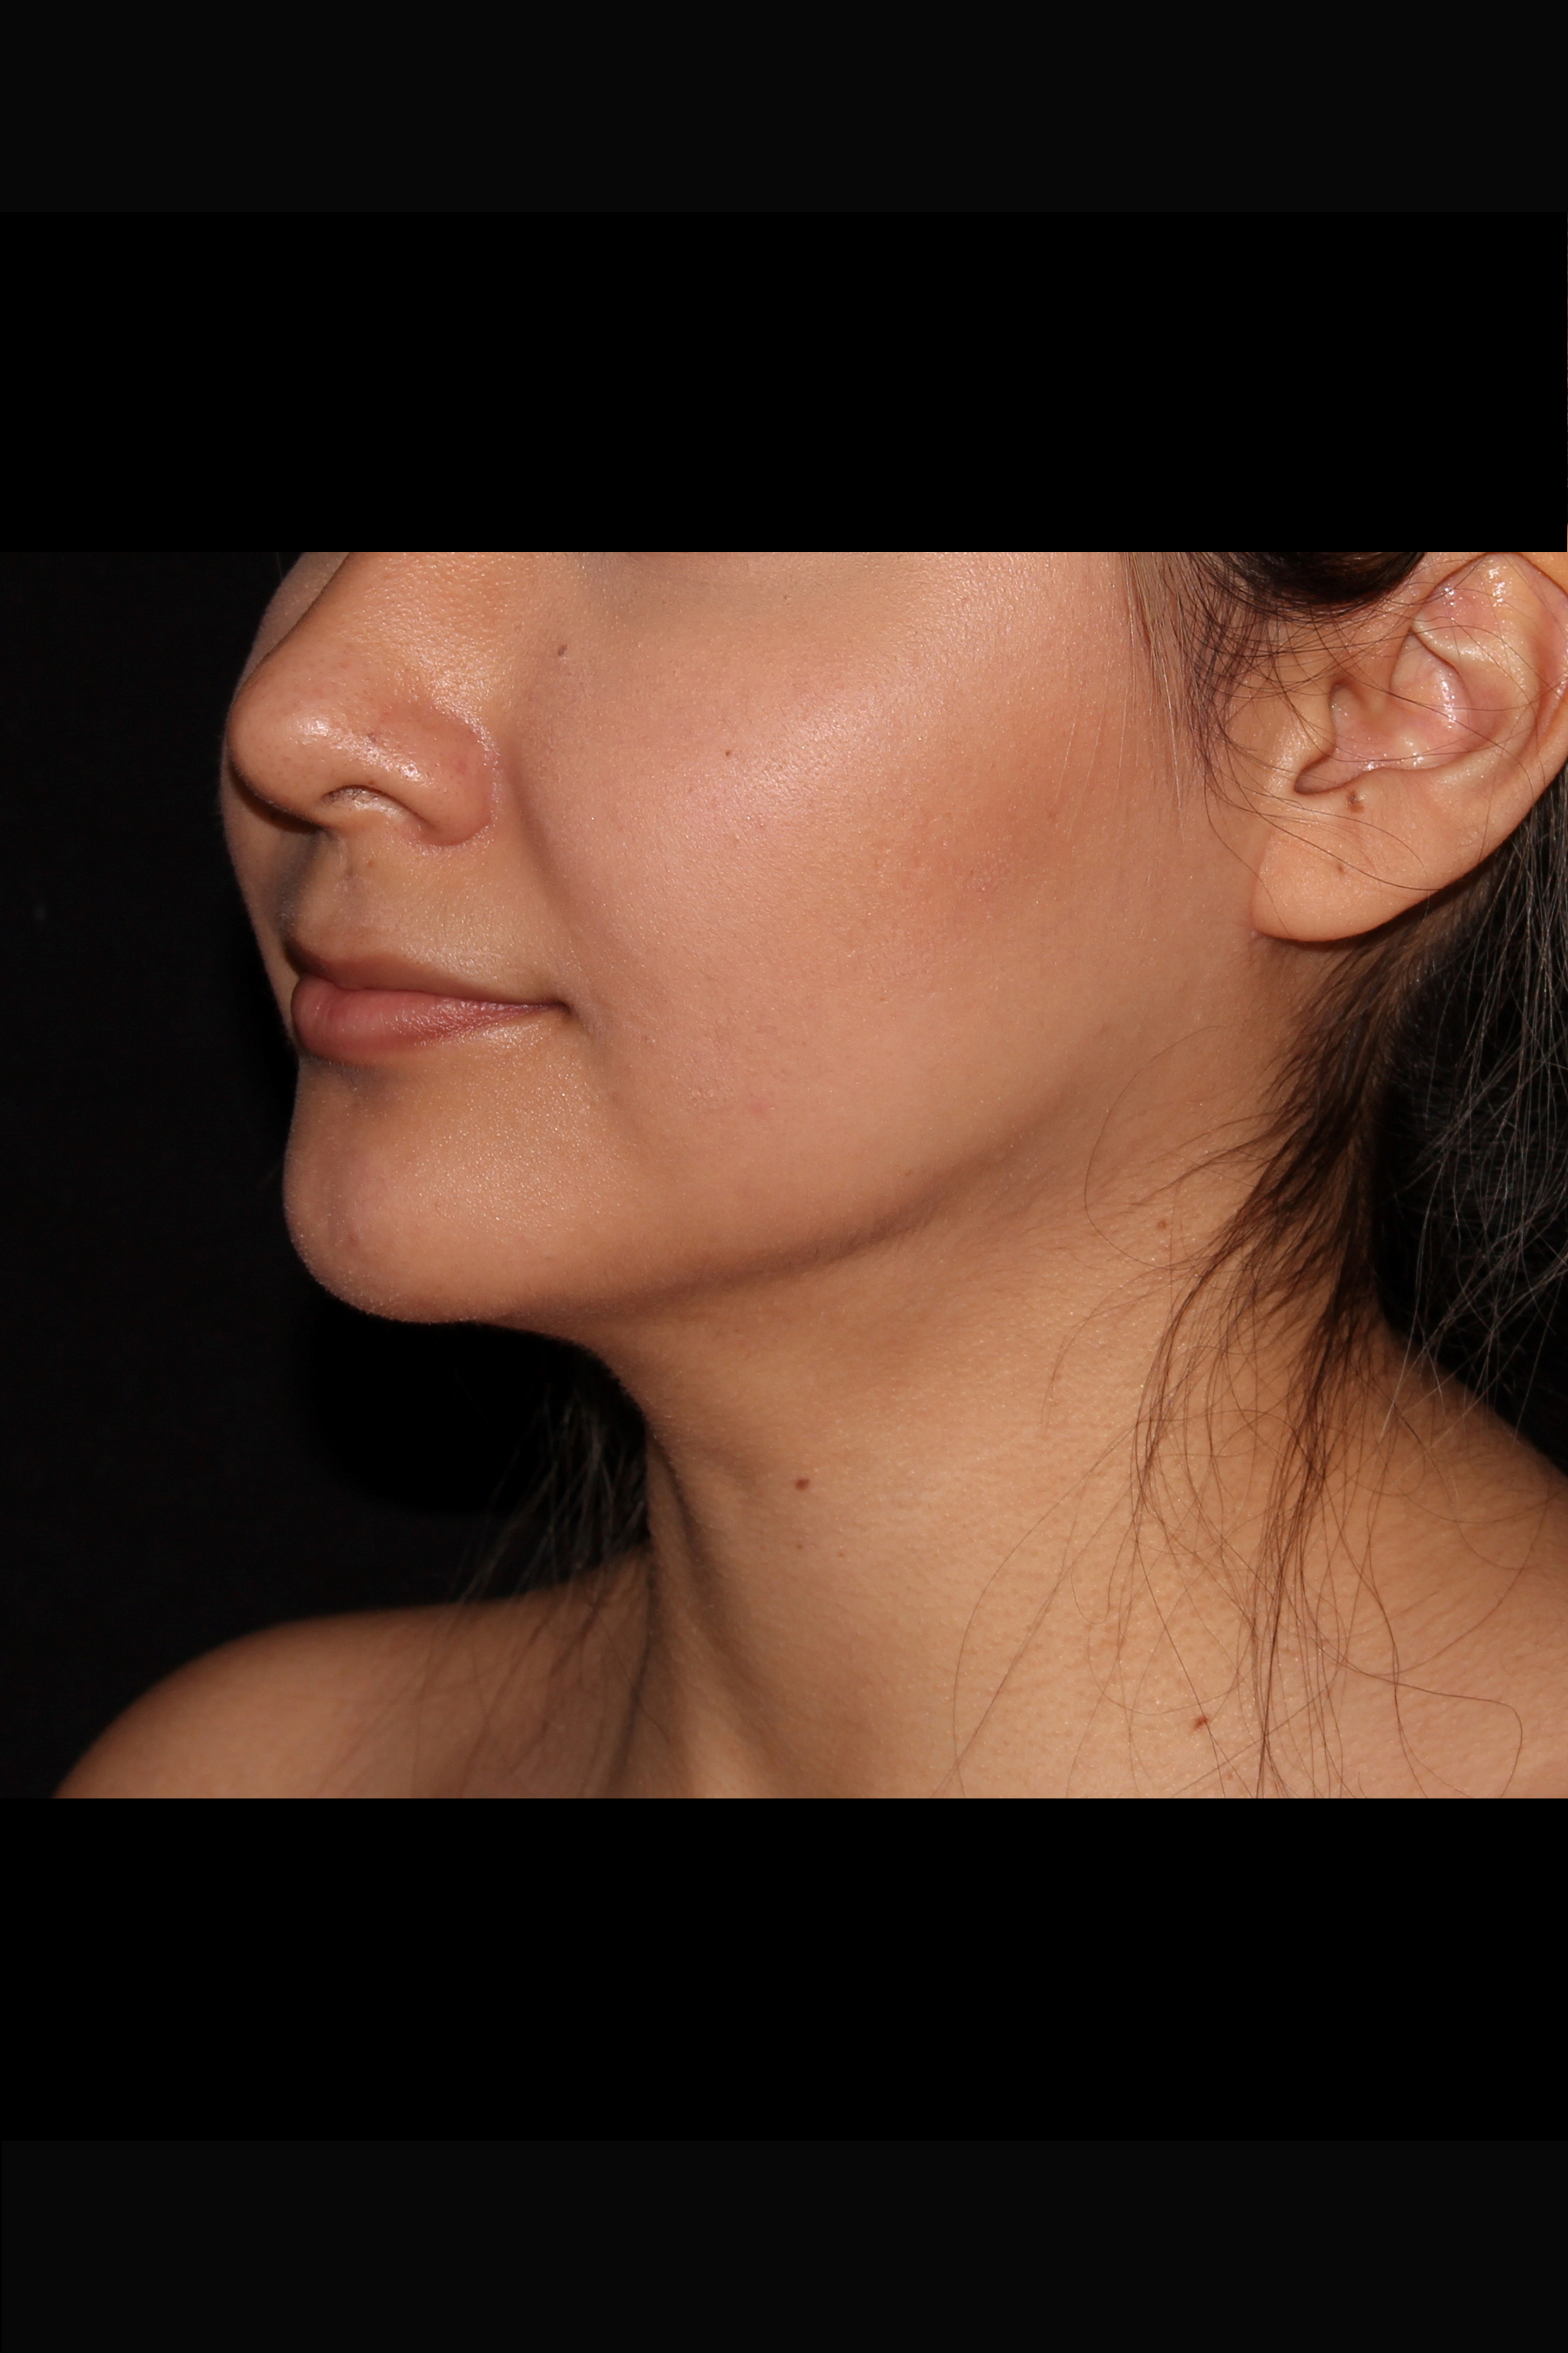 After Neck Liposuction - Chin liposuction